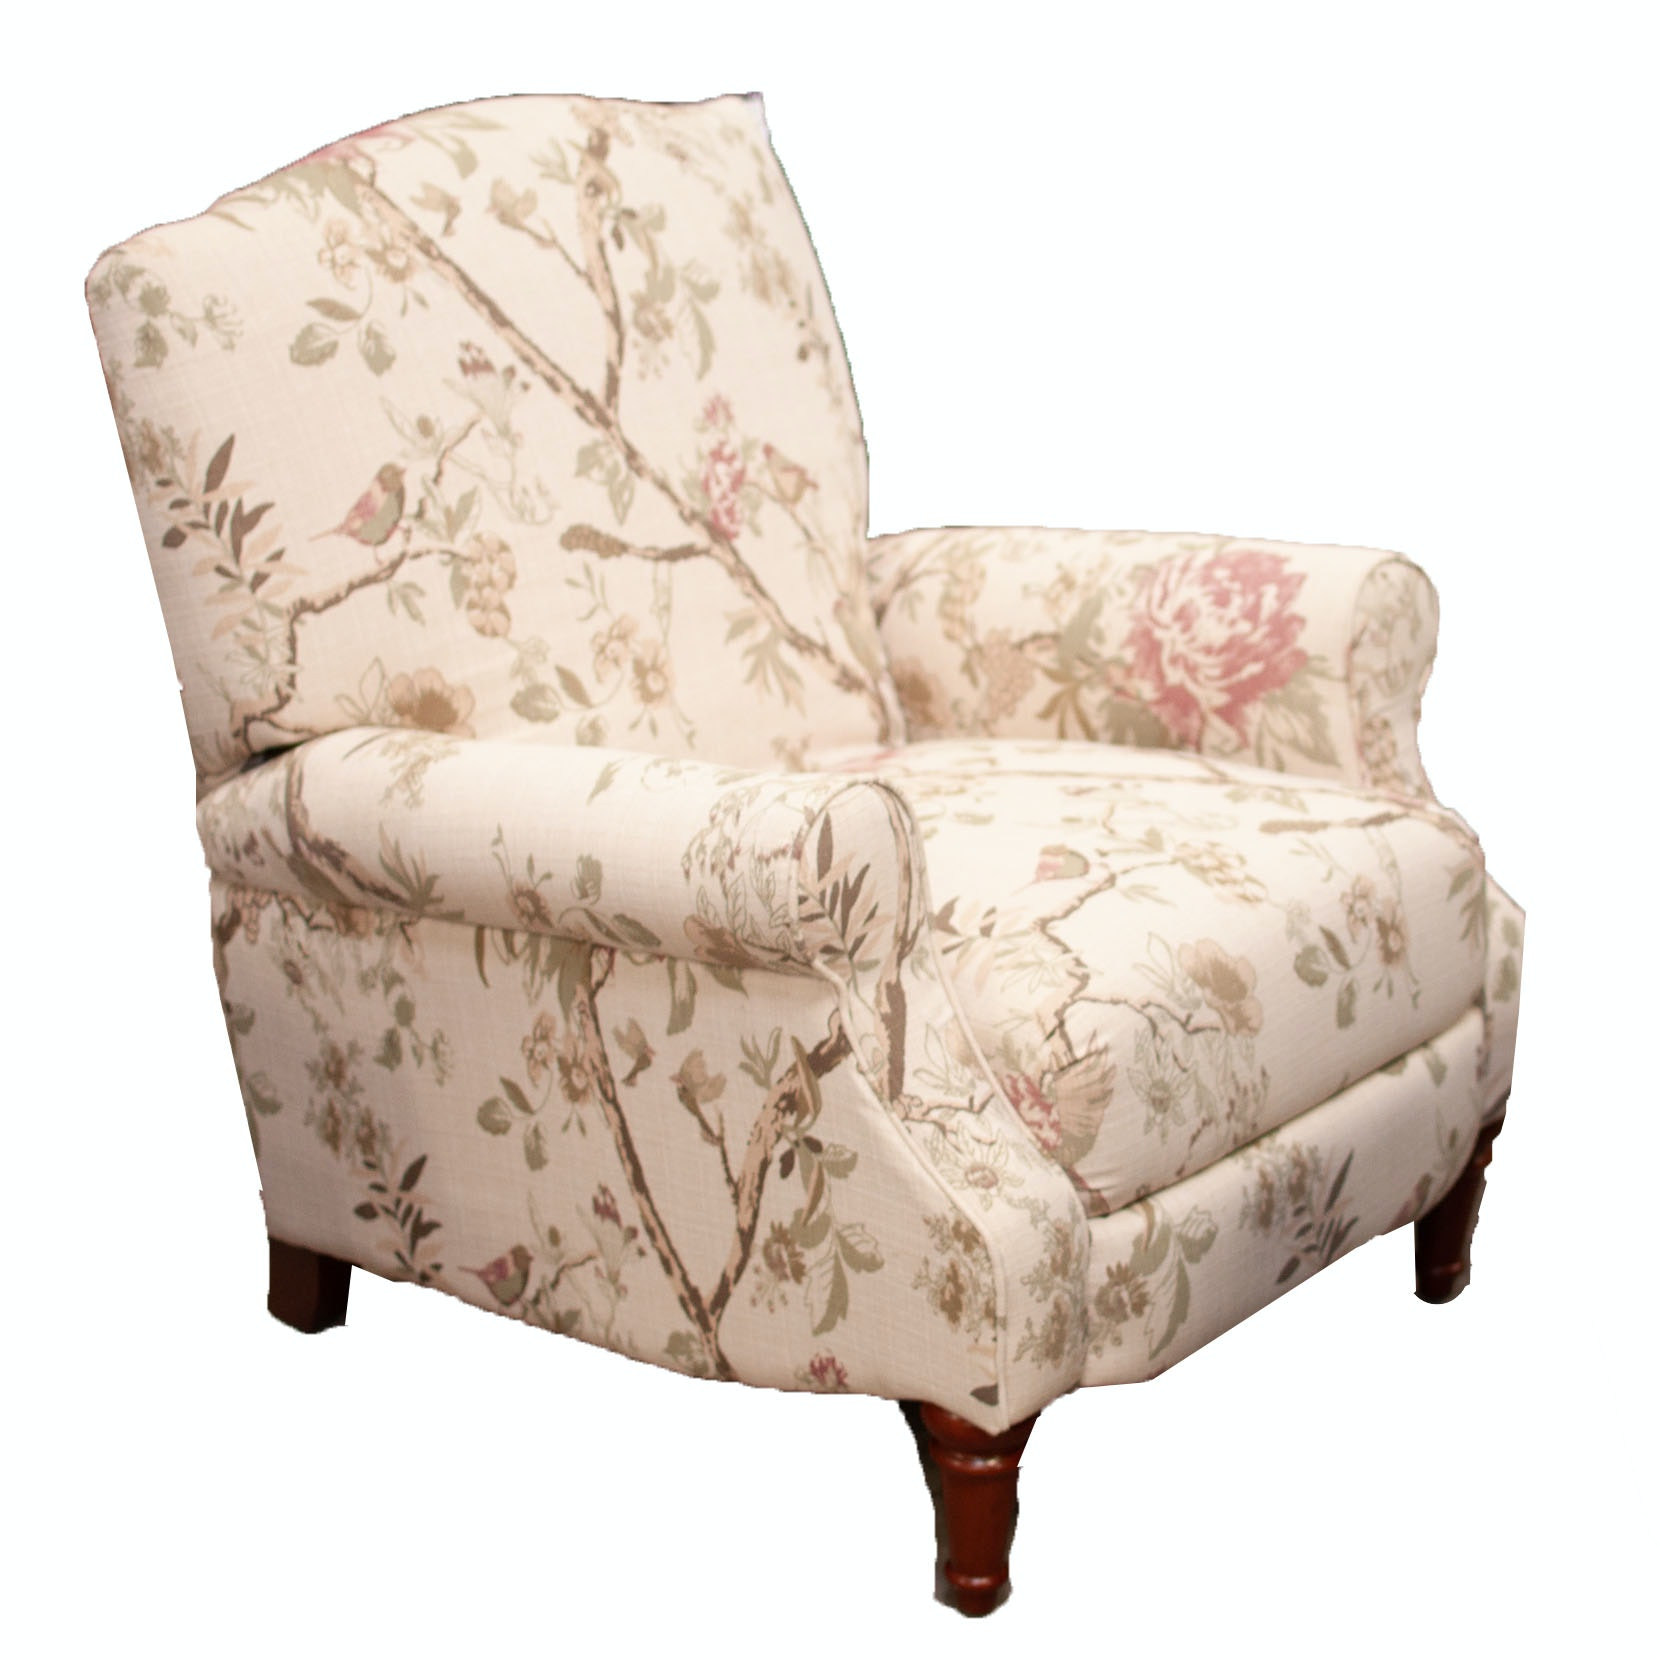 Floral Upholstered Reclining Club Chair, Contemporary